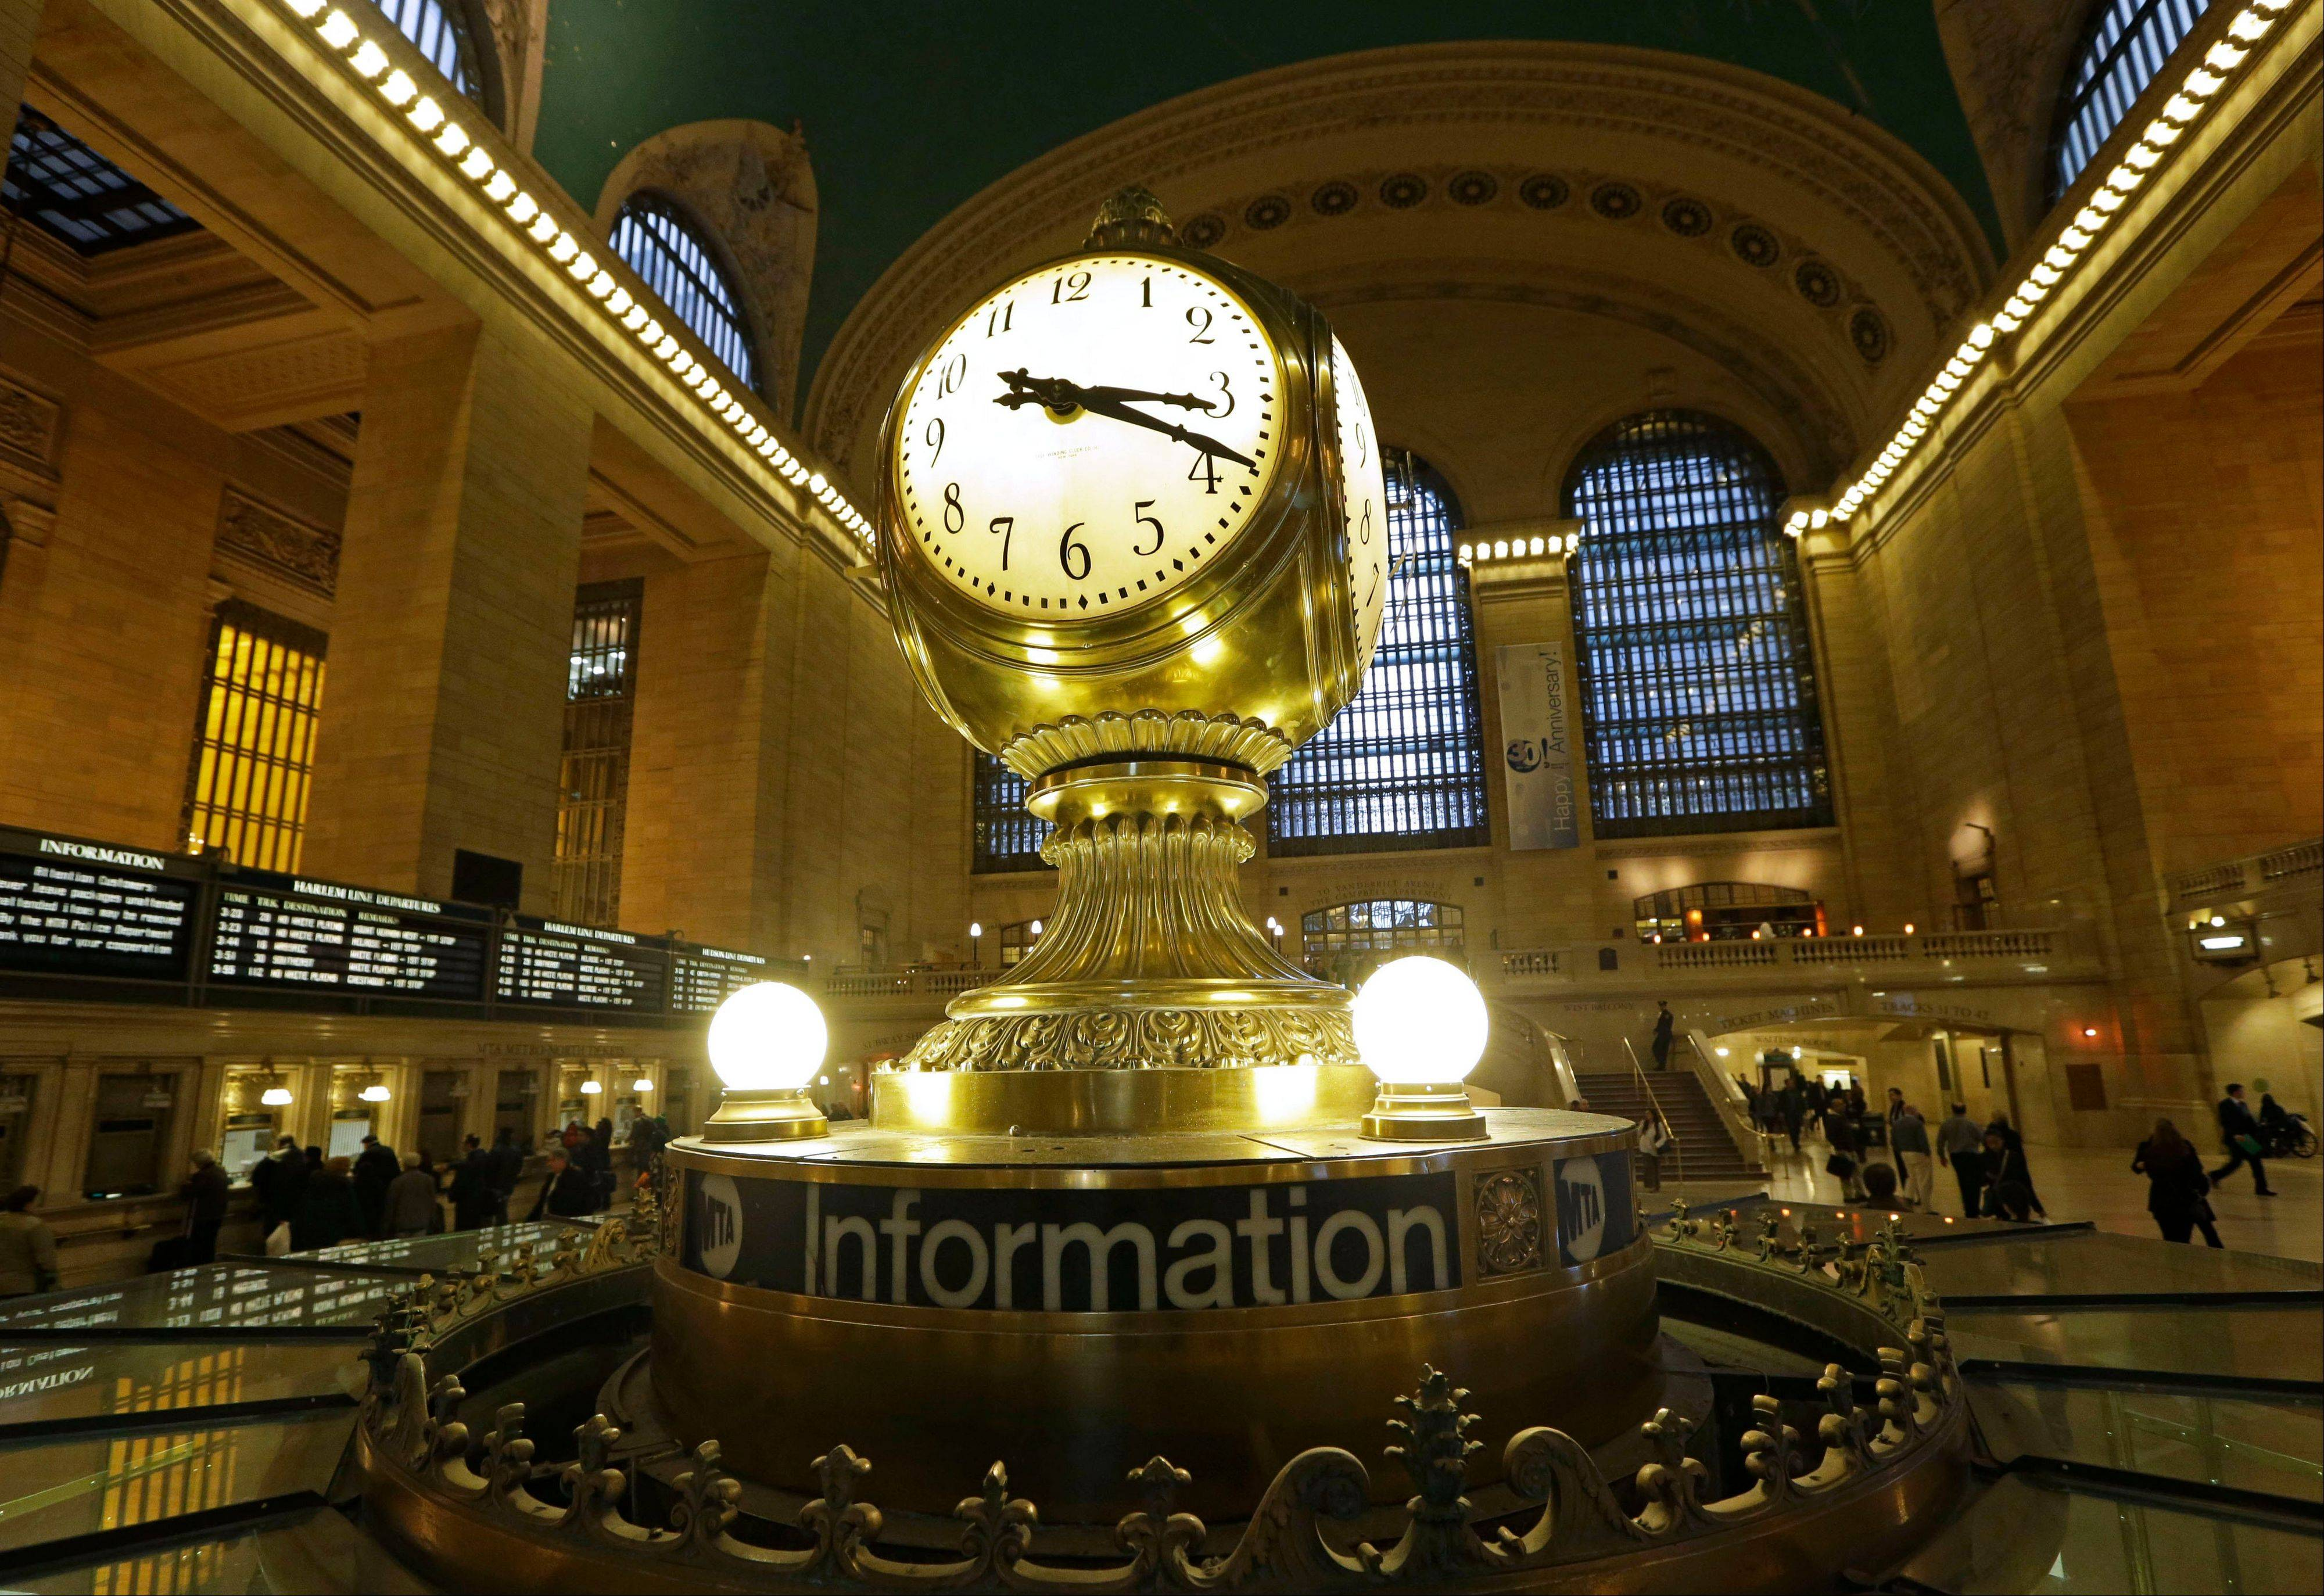 The famous opalescent clock keeps time at the center of the main concourse in Grand Central Terminal.